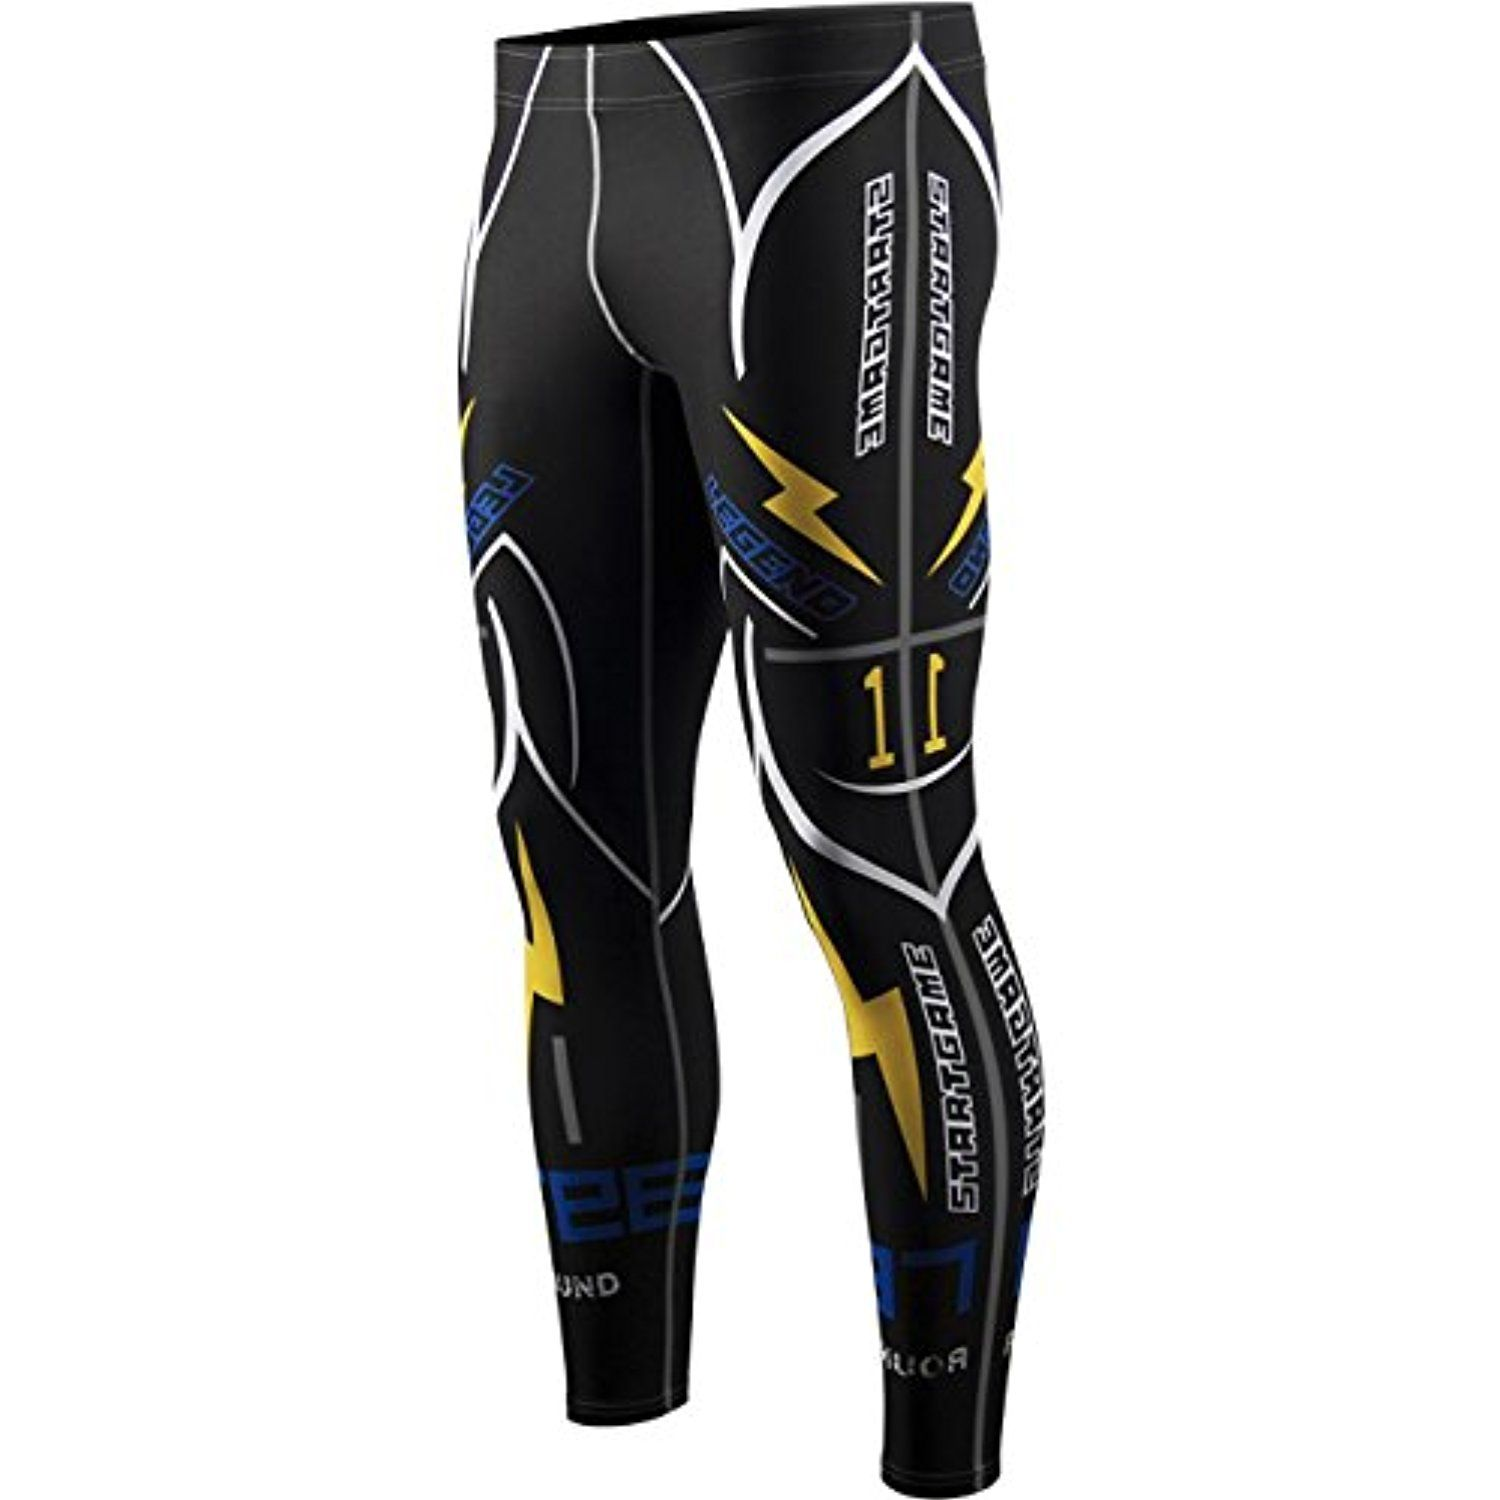 8b4958842d Tights zipravs Mens Cool Dry Compression Baselayer Workout Long Tight Pants